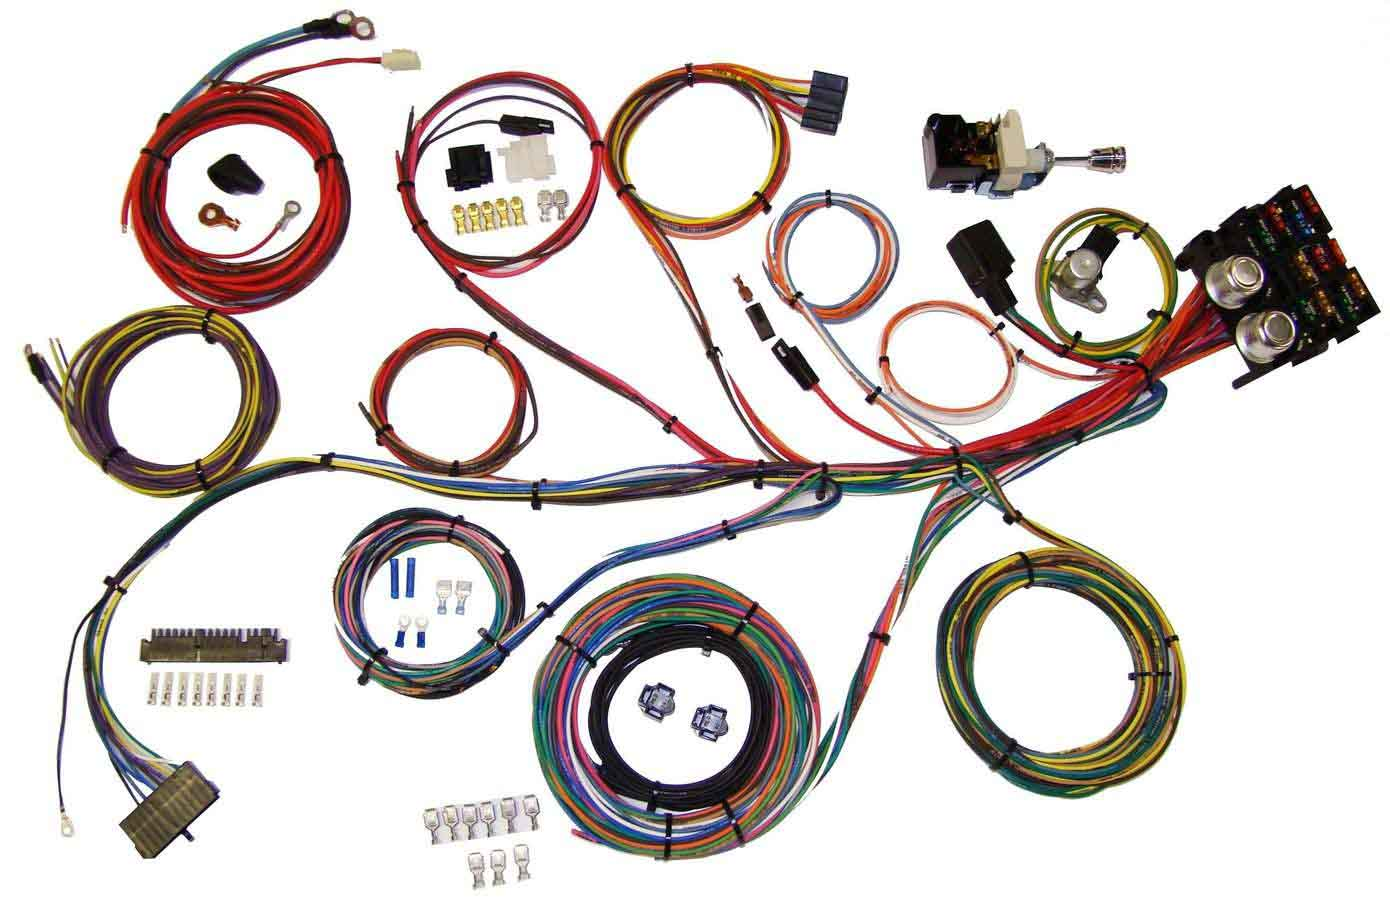 13 Gm Wiring Harness Library Hot Rod Fuse Box Store Categories